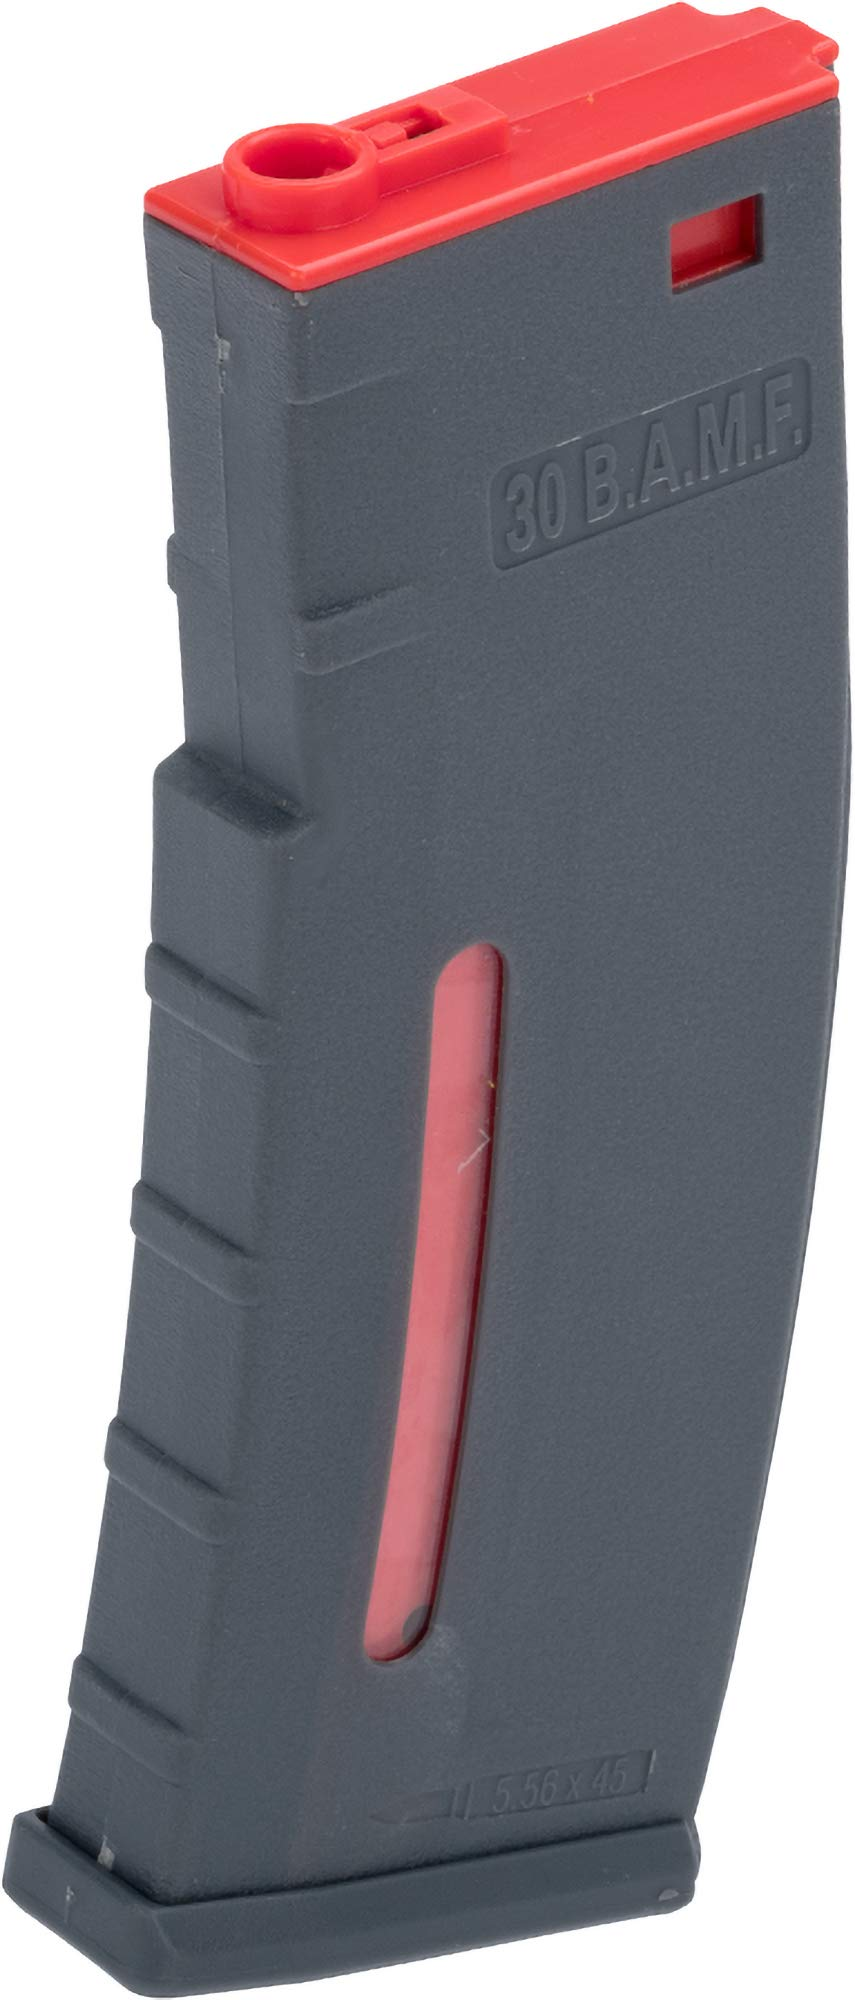 Evike BAMF 190rd Polymer Mid-Cap Airsoft Magazine for M4 / M16 Series AEG Rifles (Color: Gray & Red / x1 Single Mag) by Evike